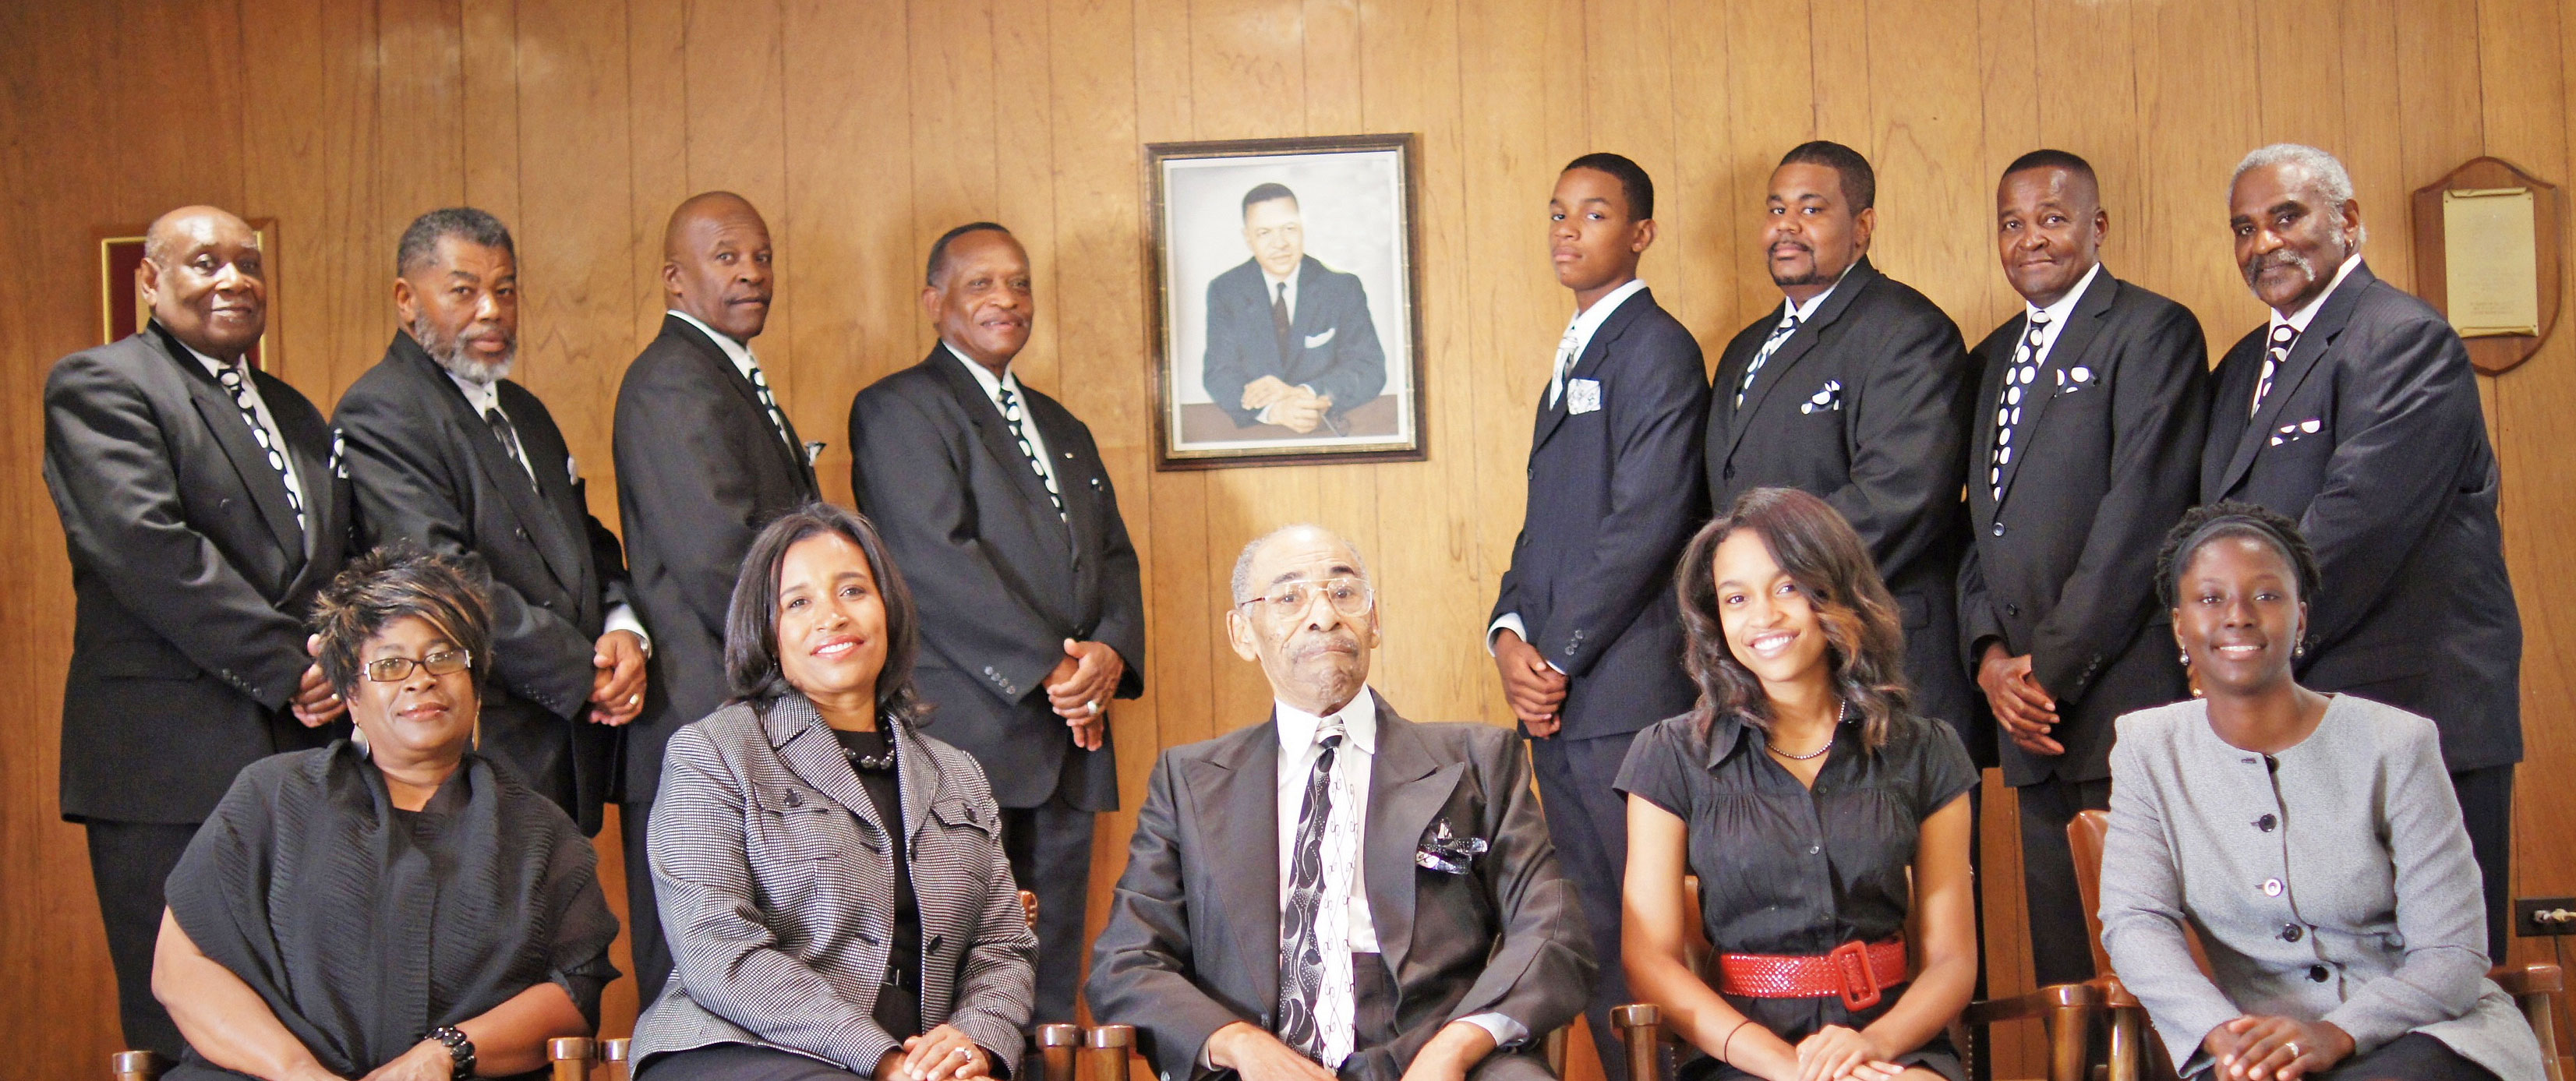 Funeral Staff